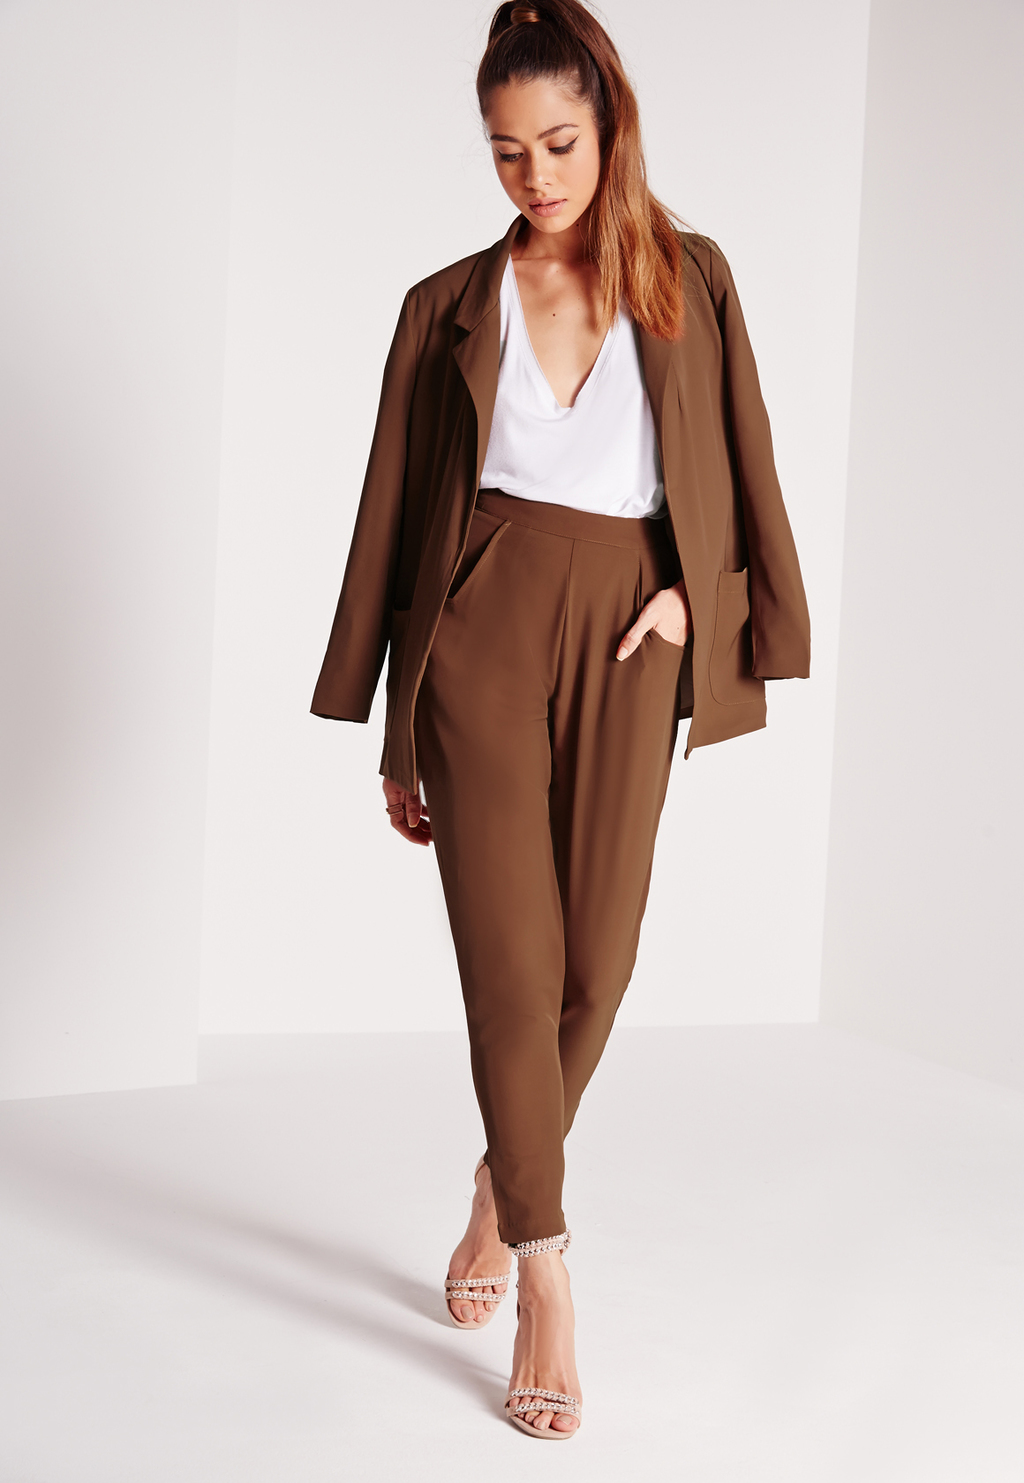 Pocket Detail Cigarette Suit Trousers Brown, Brown - pattern: plain; style: peg leg; waist: high rise; predominant colour: chocolate brown; occasions: evening, creative work; length: ankle length; fibres: polyester/polyamide - 100%; texture group: crepes; fit: tapered; pattern type: fabric; season: s/s 2016; wardrobe: basic